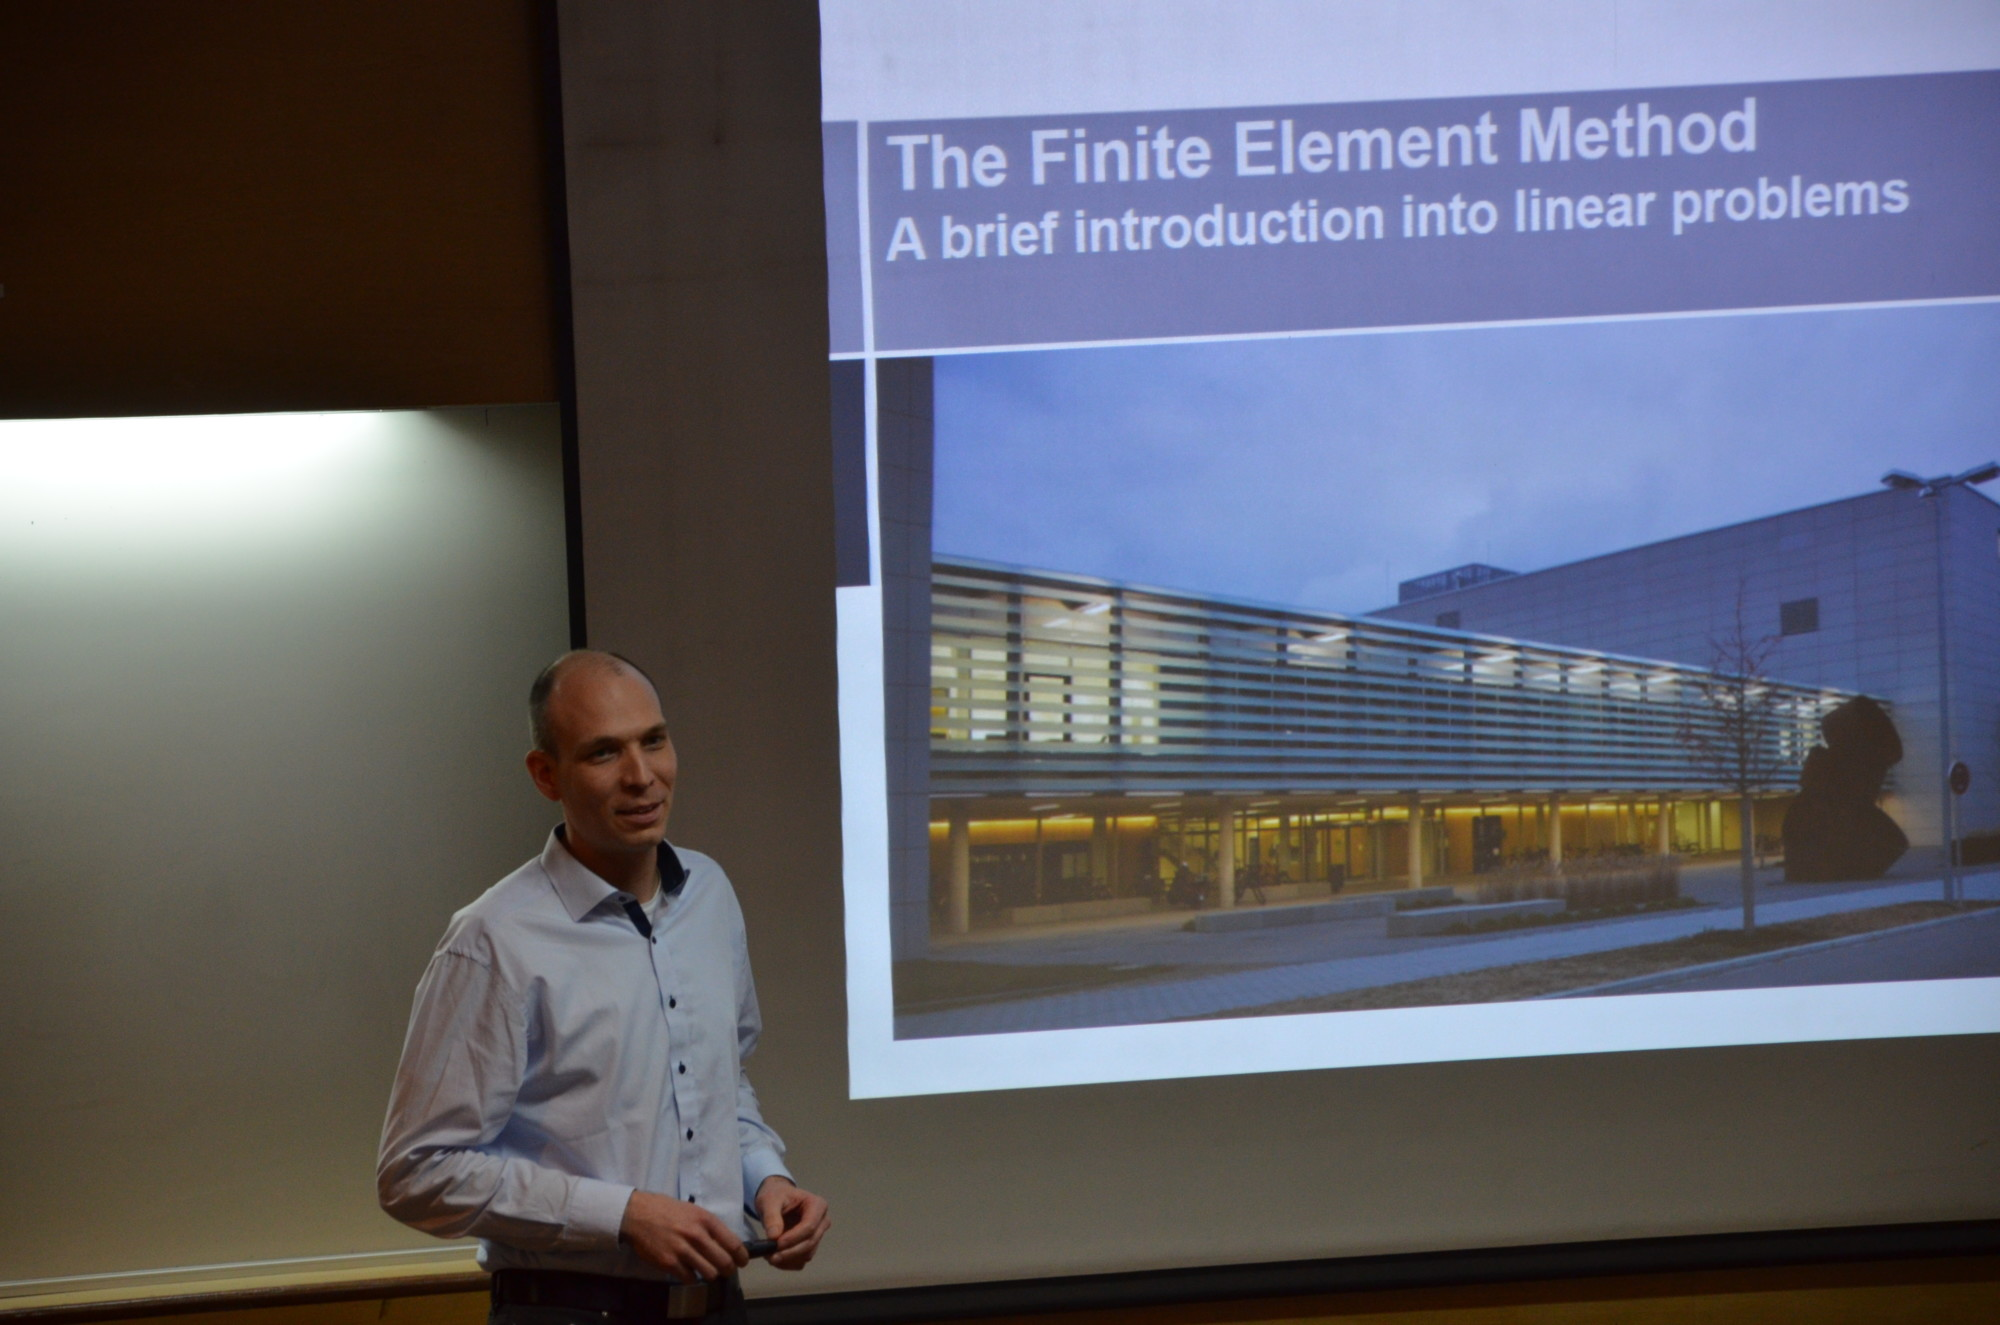 """Dr. Sebastian Pfaller giving a lecture on """"The Finite Element Method"""" at the Indian Institute of Technology Delhi."""